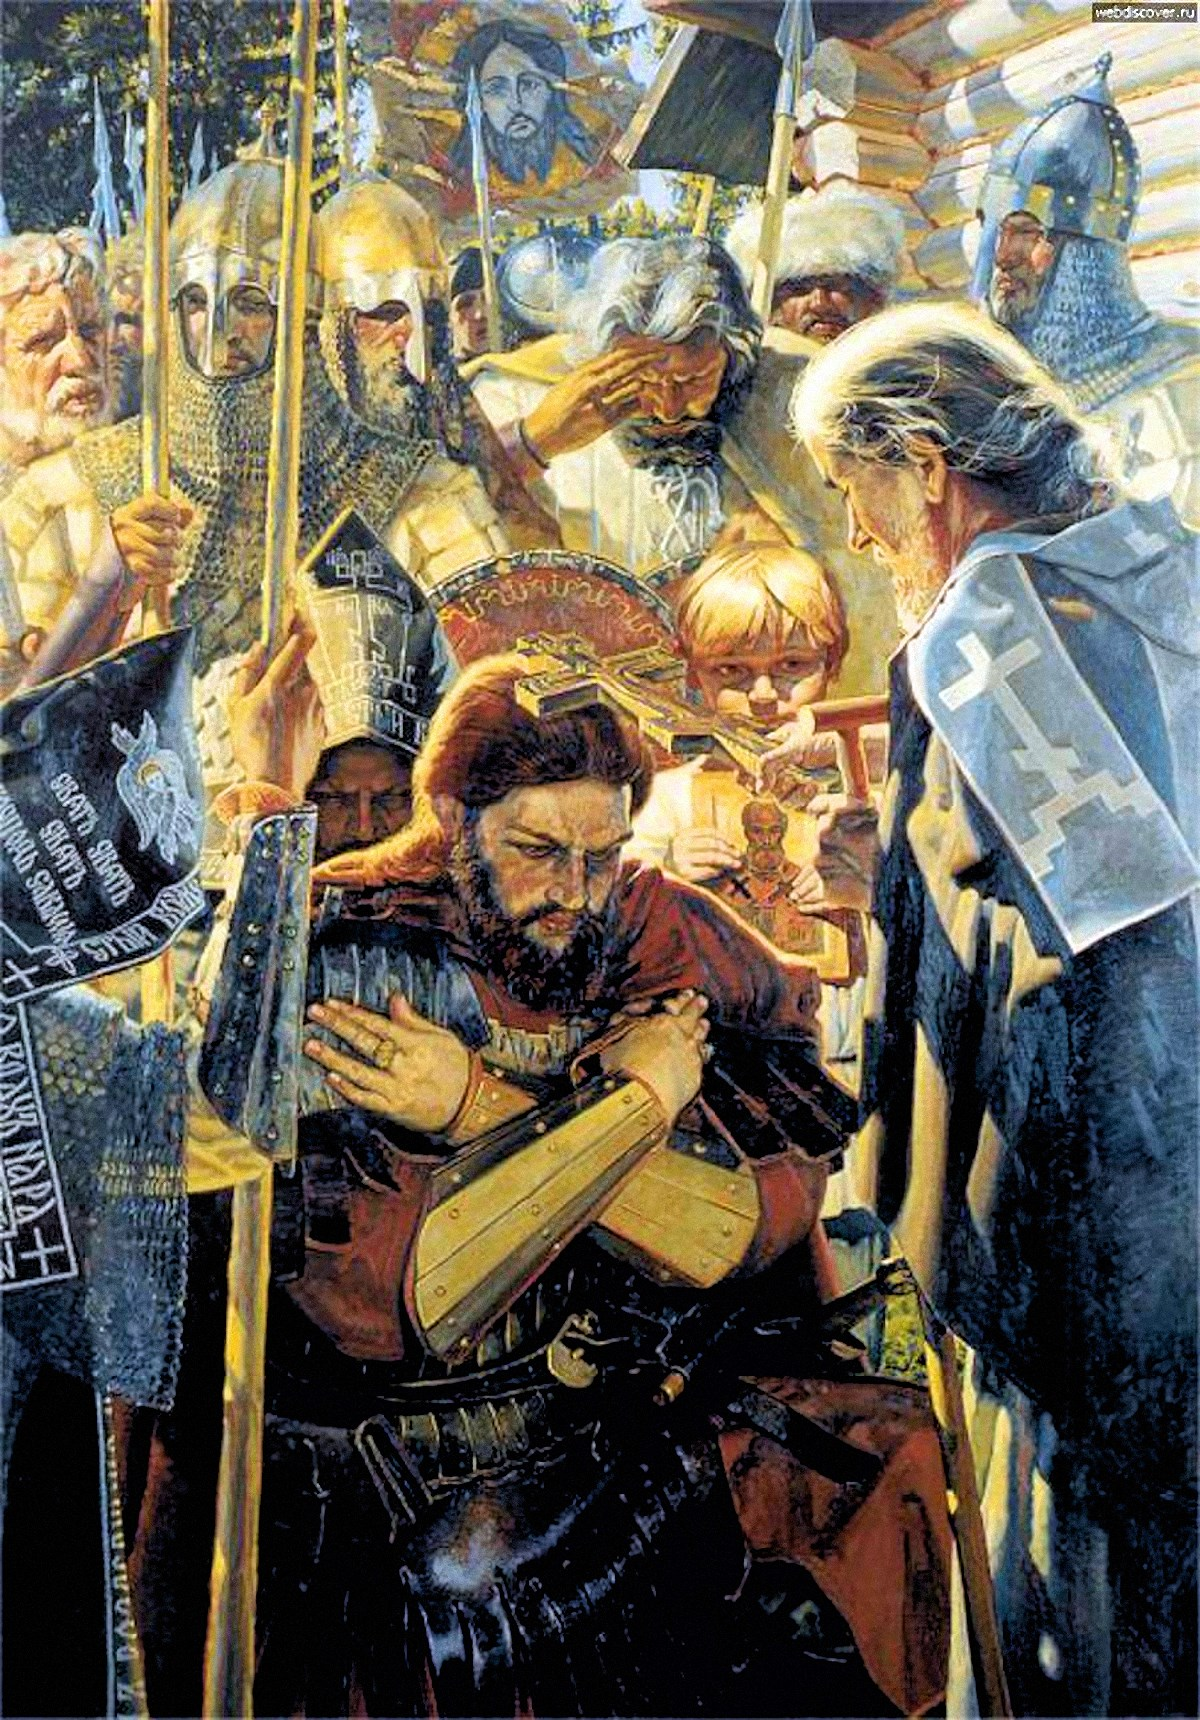 00 Igor Sushenok. Do Not Yield Russian Land. St Sergei Radonezhsky Blessing St Dmitri Donskoi. 2001